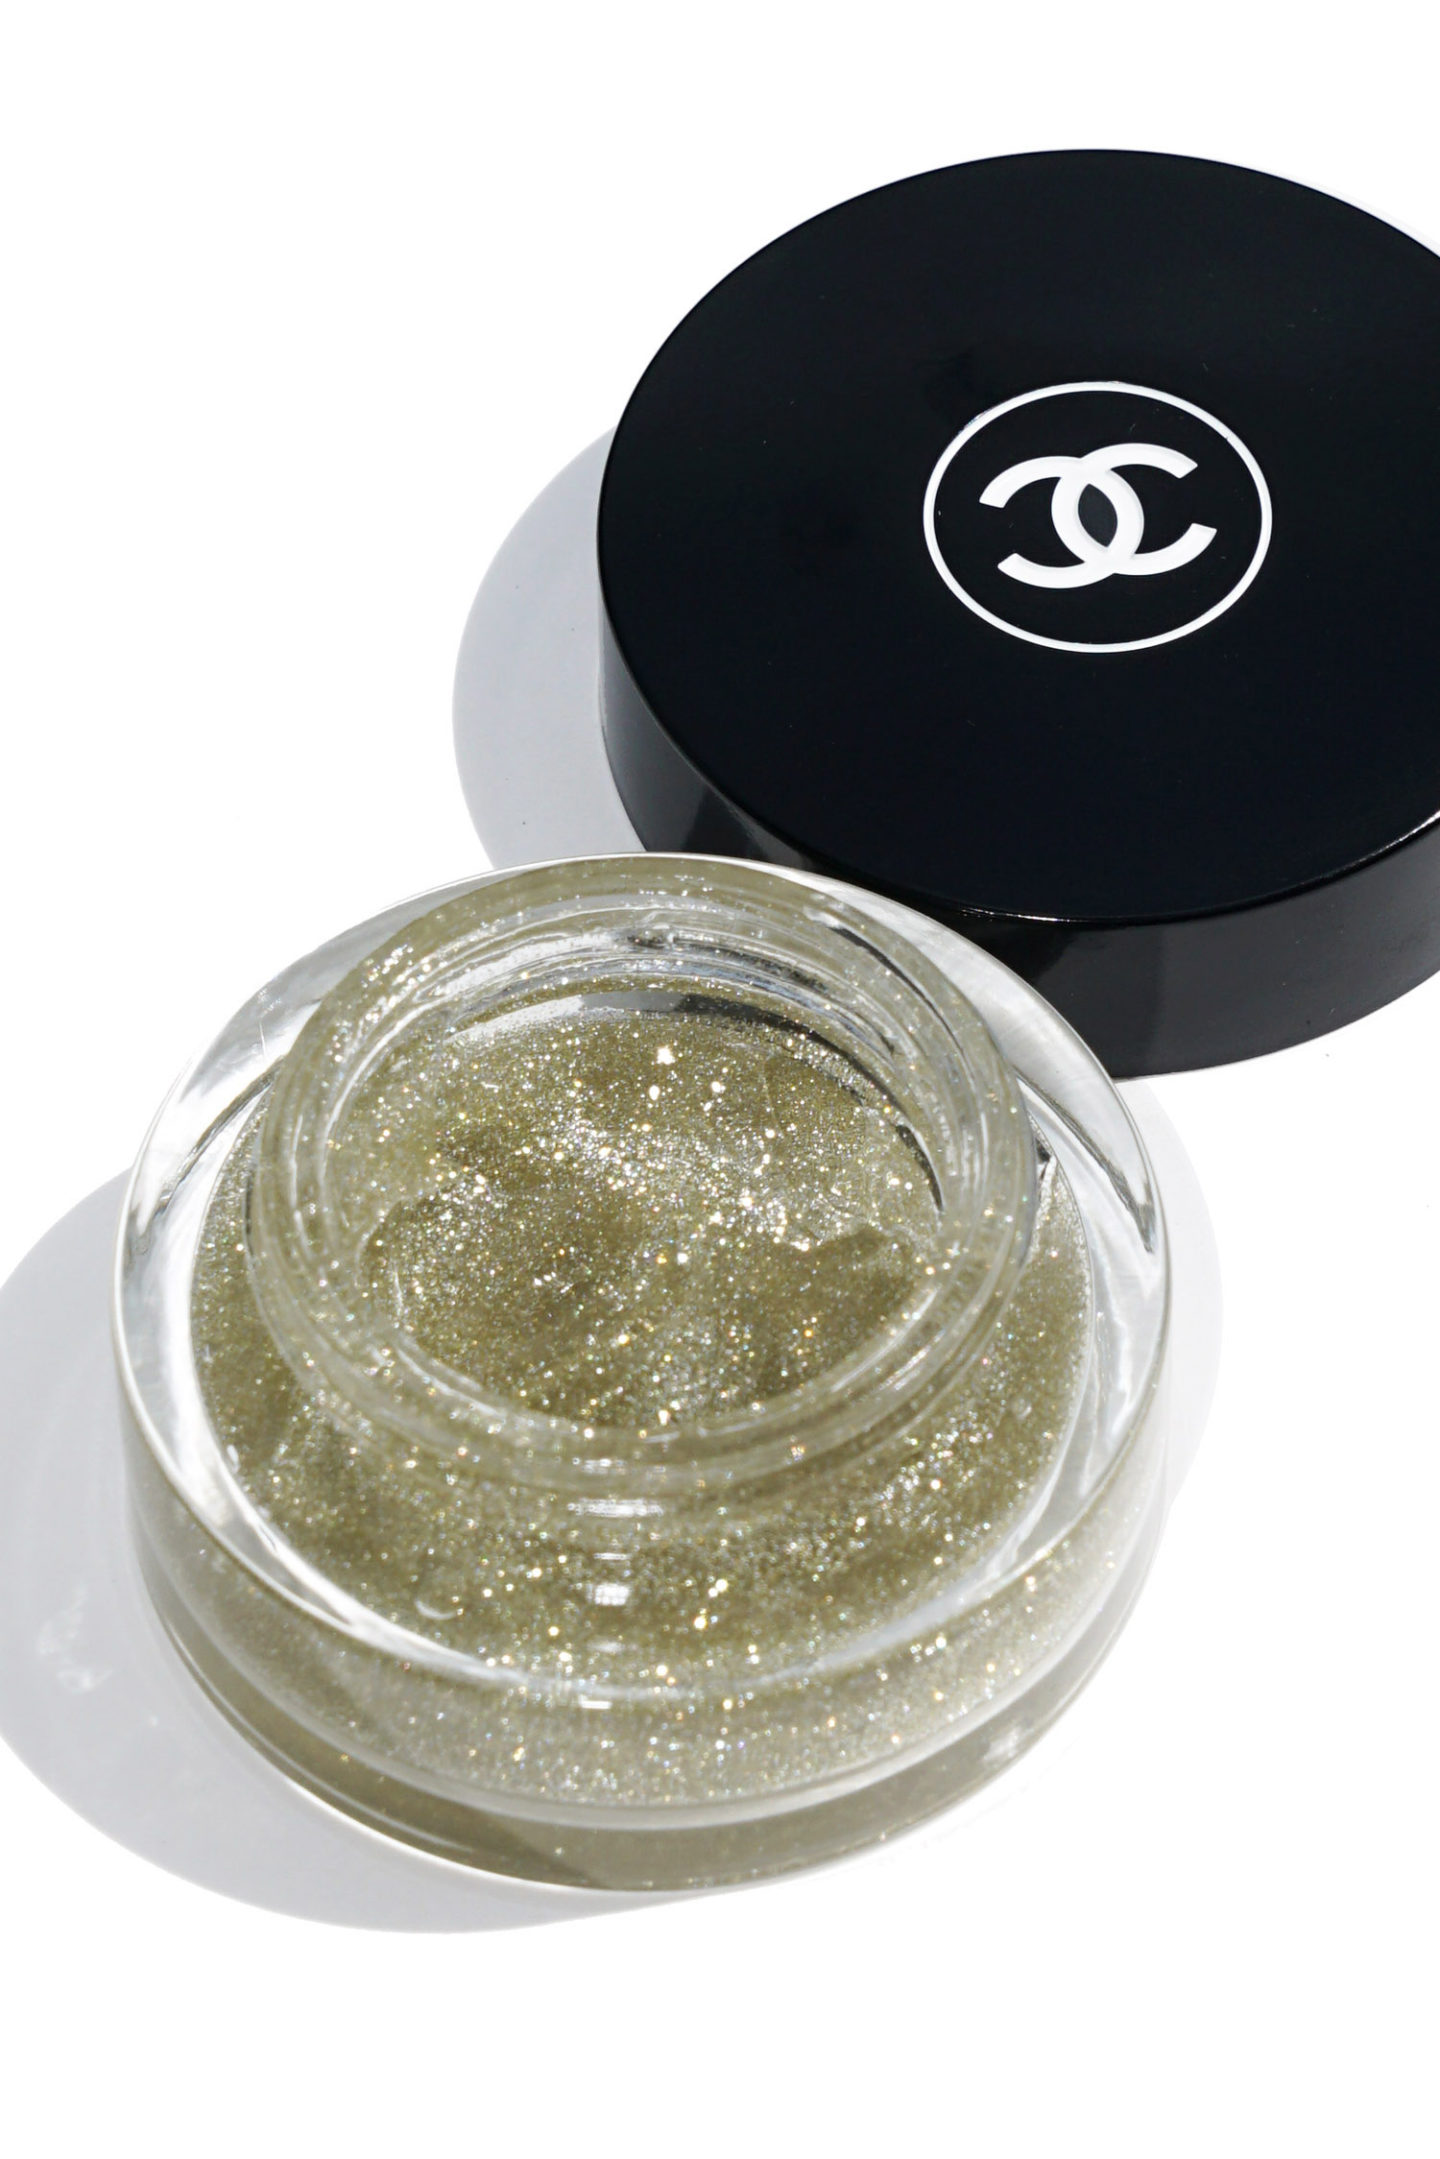 Gel chatoyant Chanel Le Gel Pailette